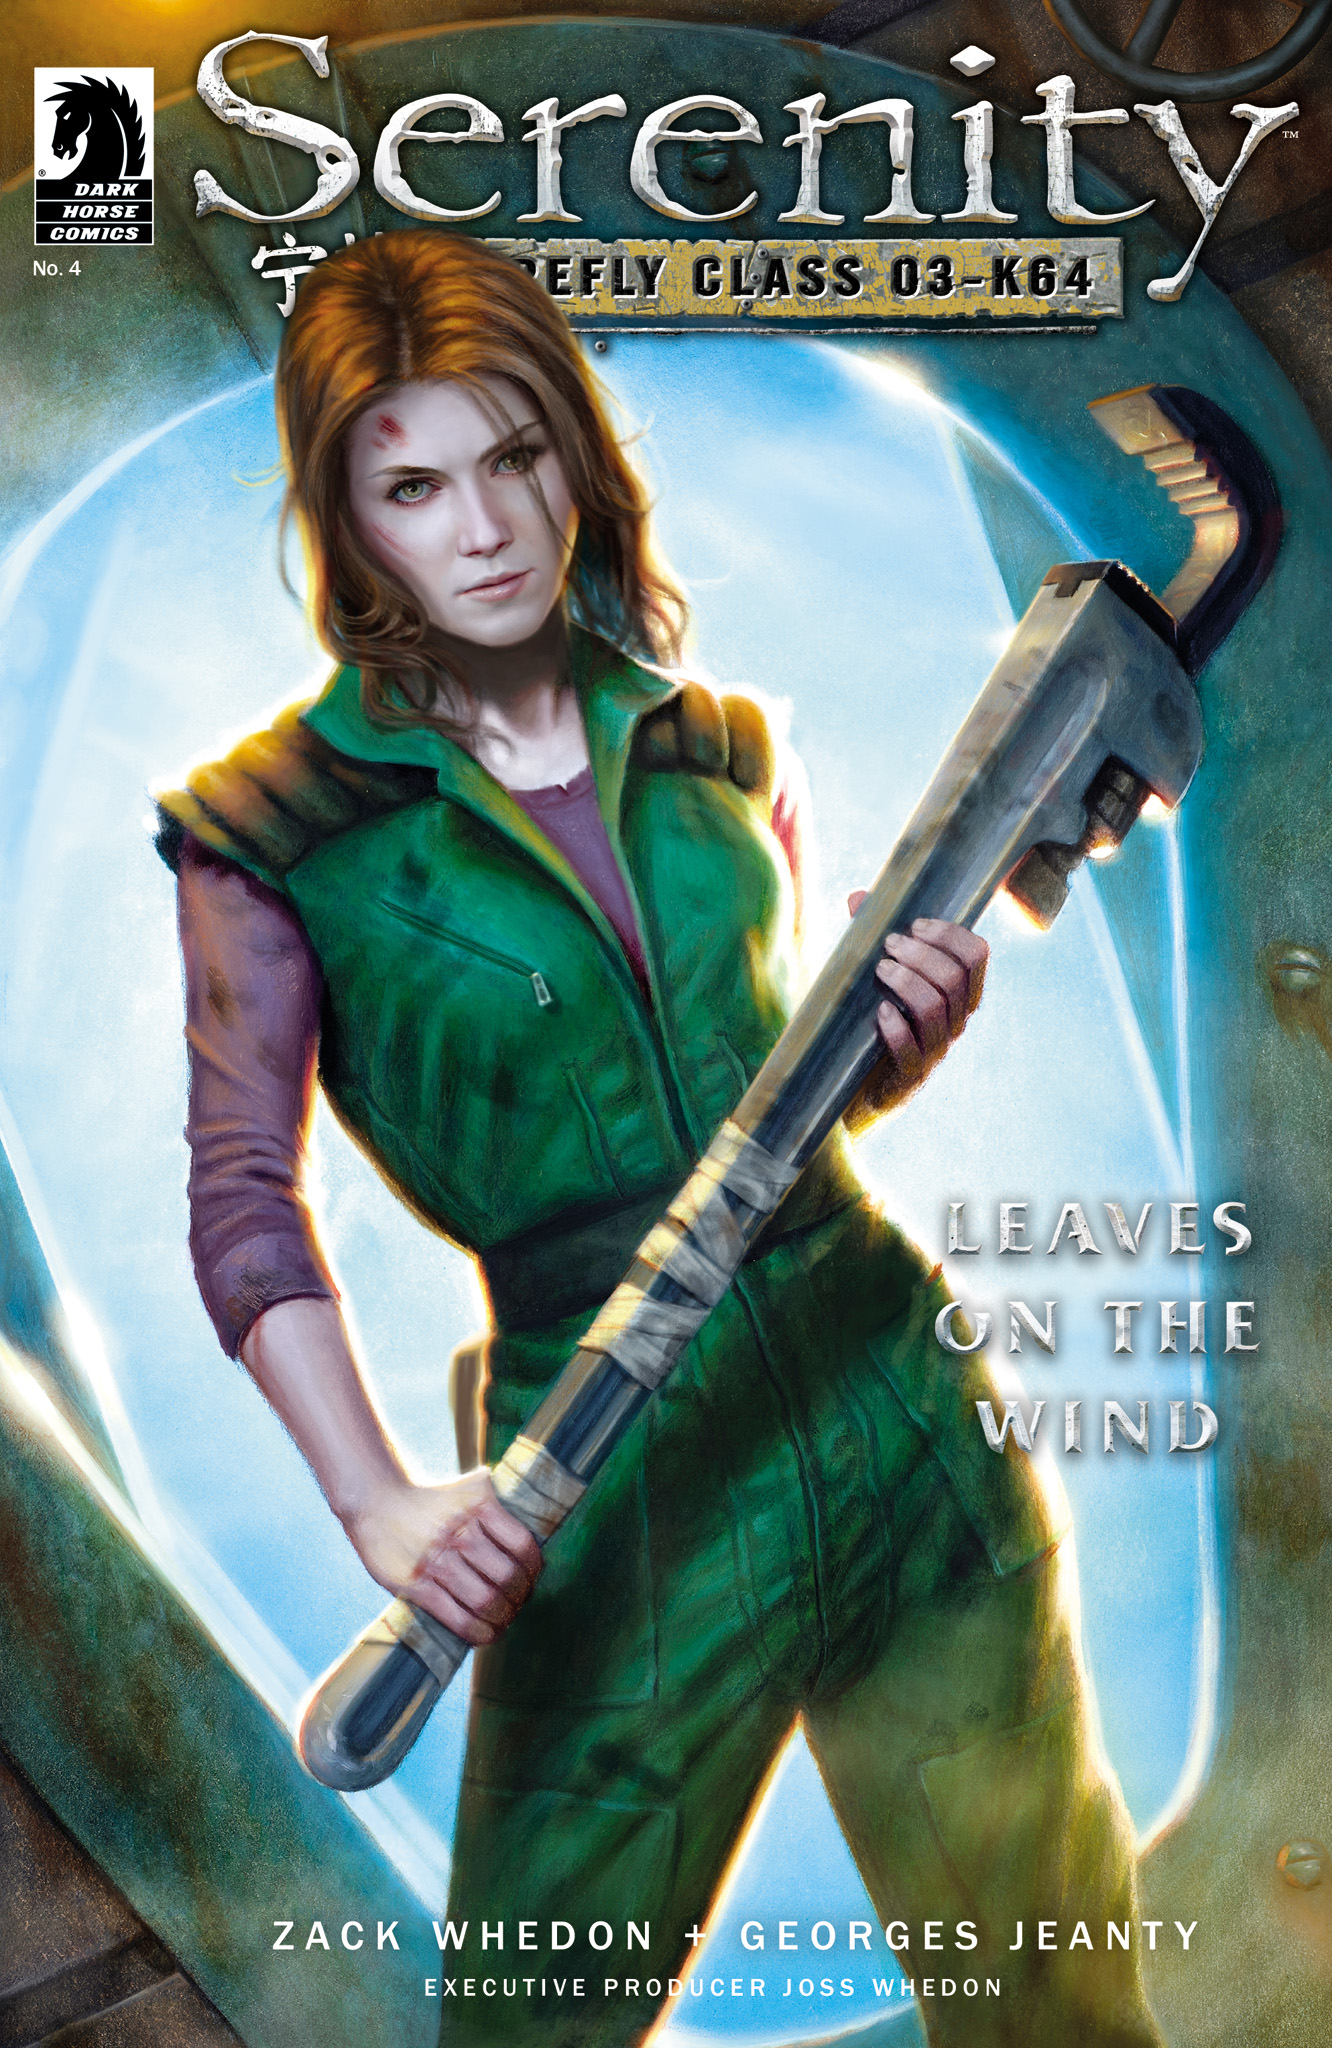 Read online Serenity: Firefly Class 03-K64  Leaves on the Wind comic -  Issue #4 - 1